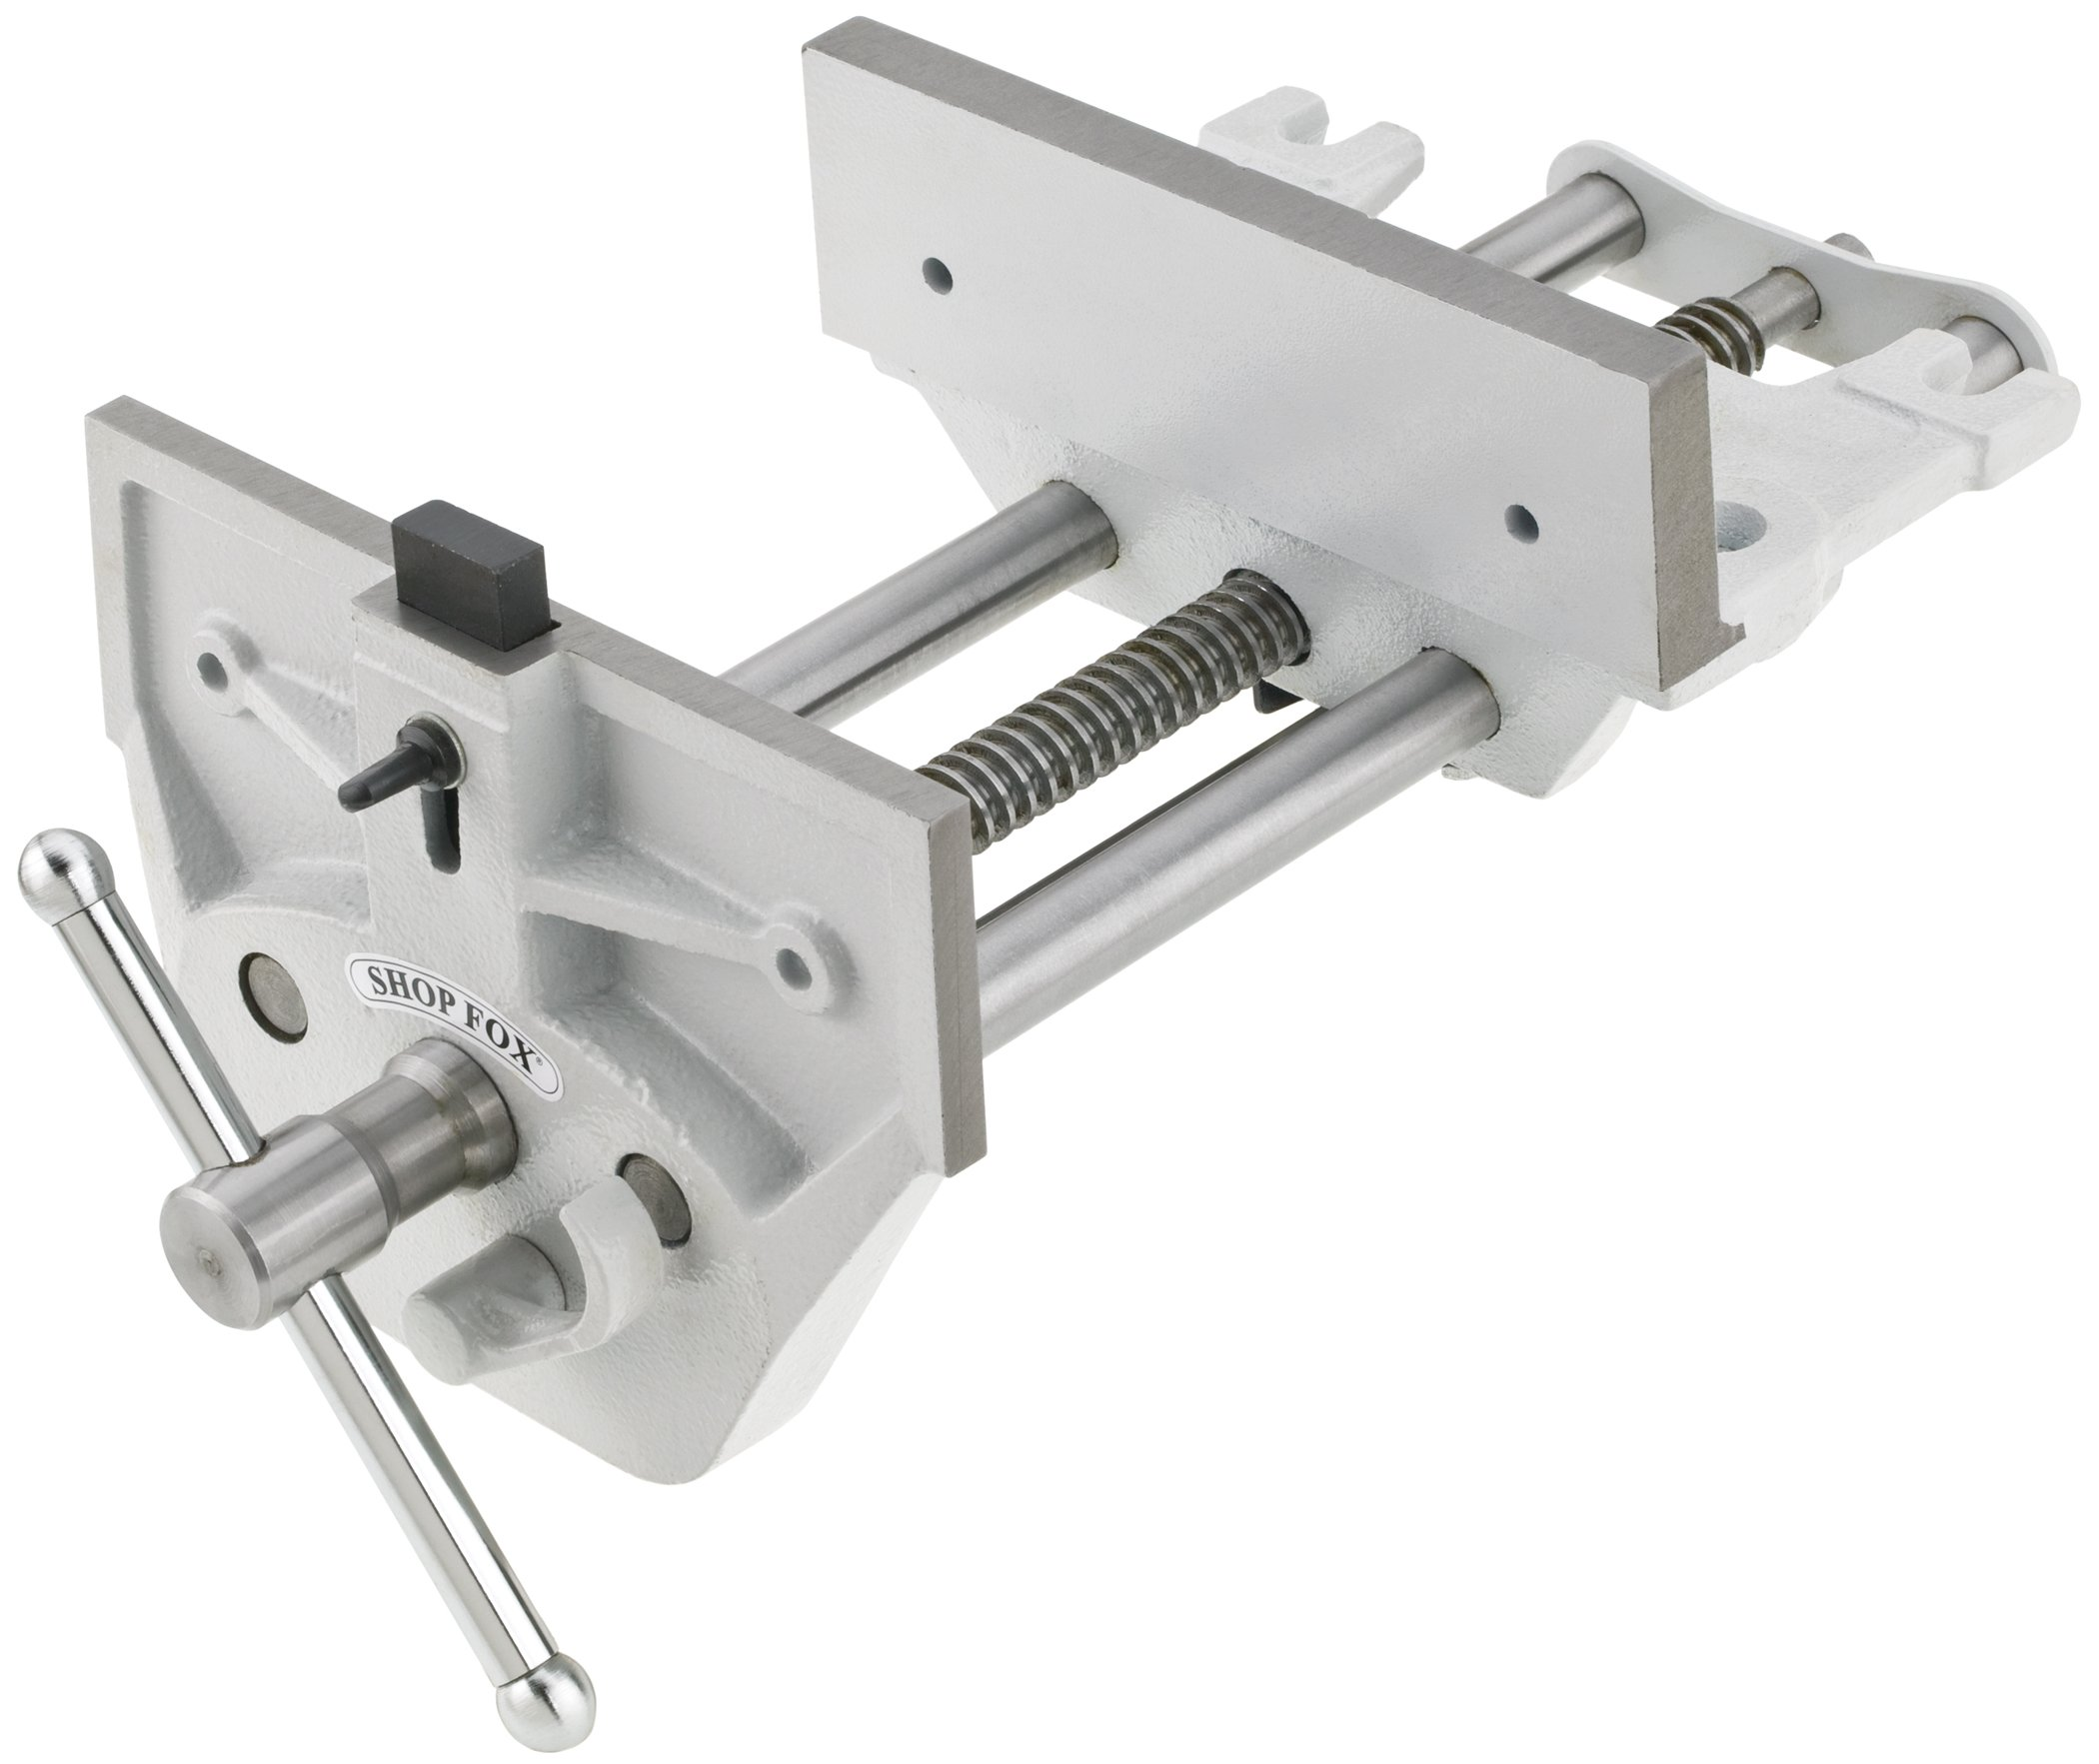 Shop Fox D4328 9-Inch Quick Release Wood Vise by Shop Fox